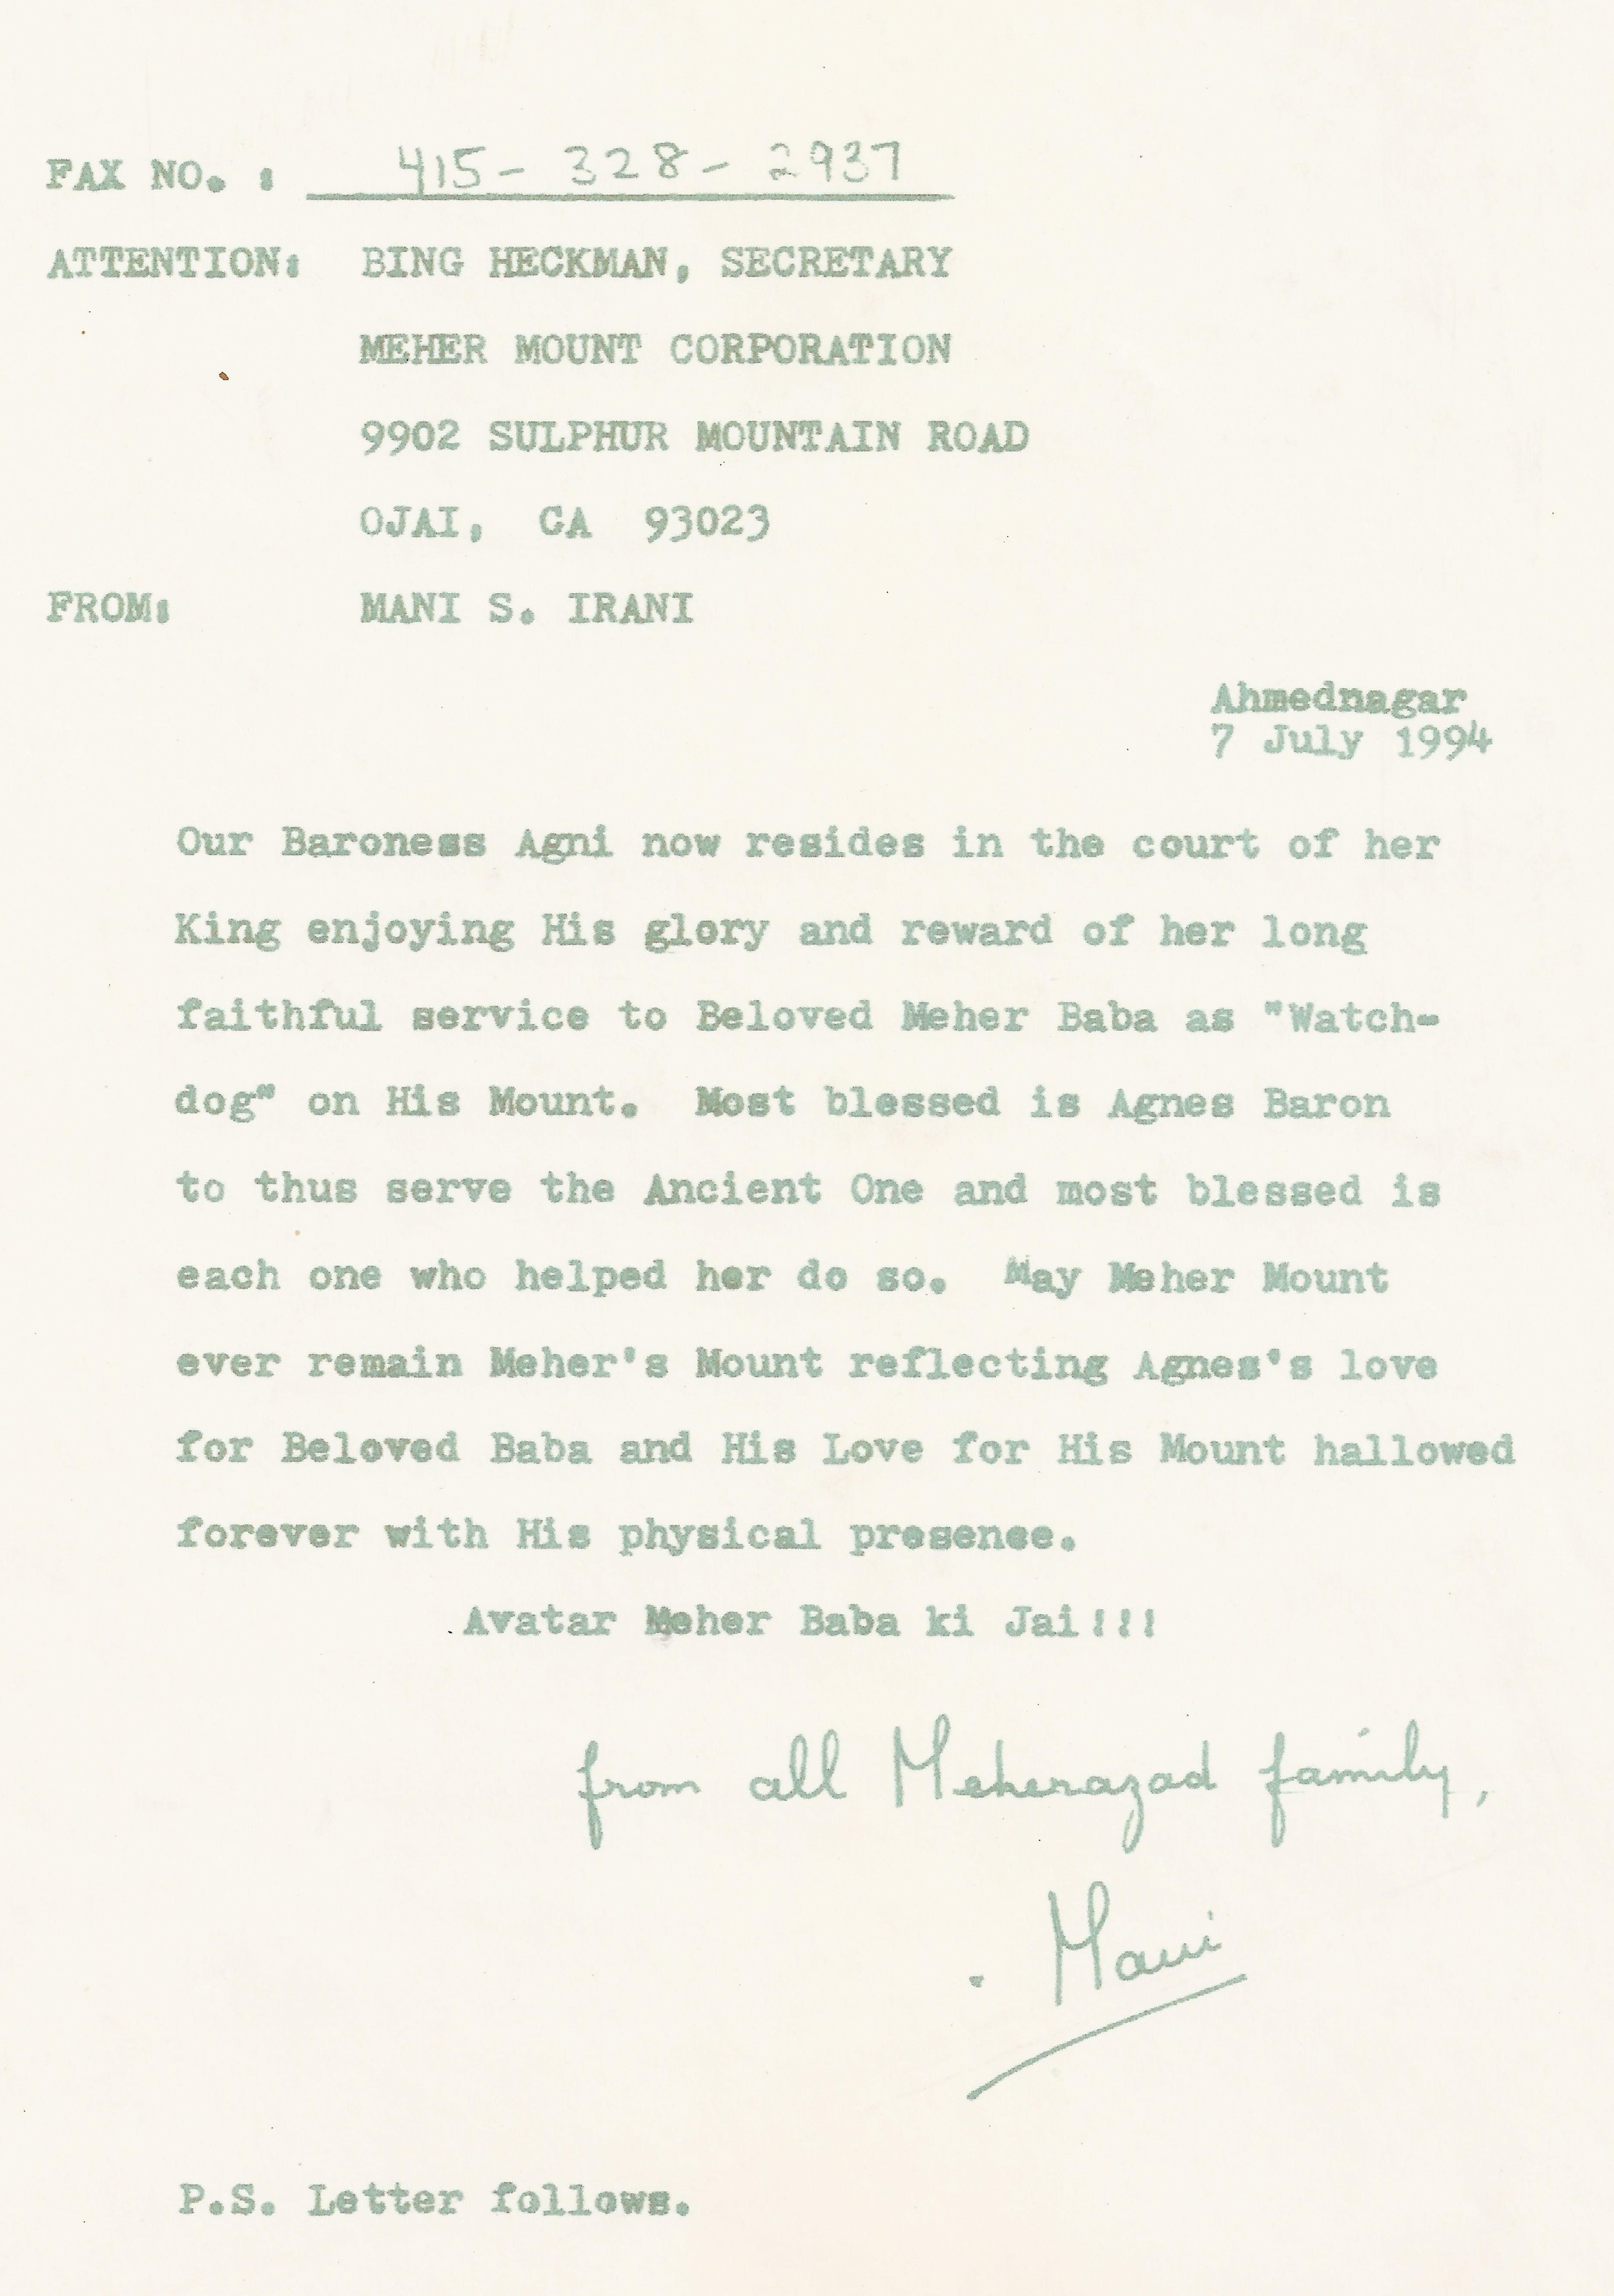 LETTER SENT TO MEHER MOUNT upon the death of co-founder Agnes Baron from Mani S. Irani, Meher Baba's sister and chairman of the Avatar Meher Baba Perpetual Public Charitable Trust in India.